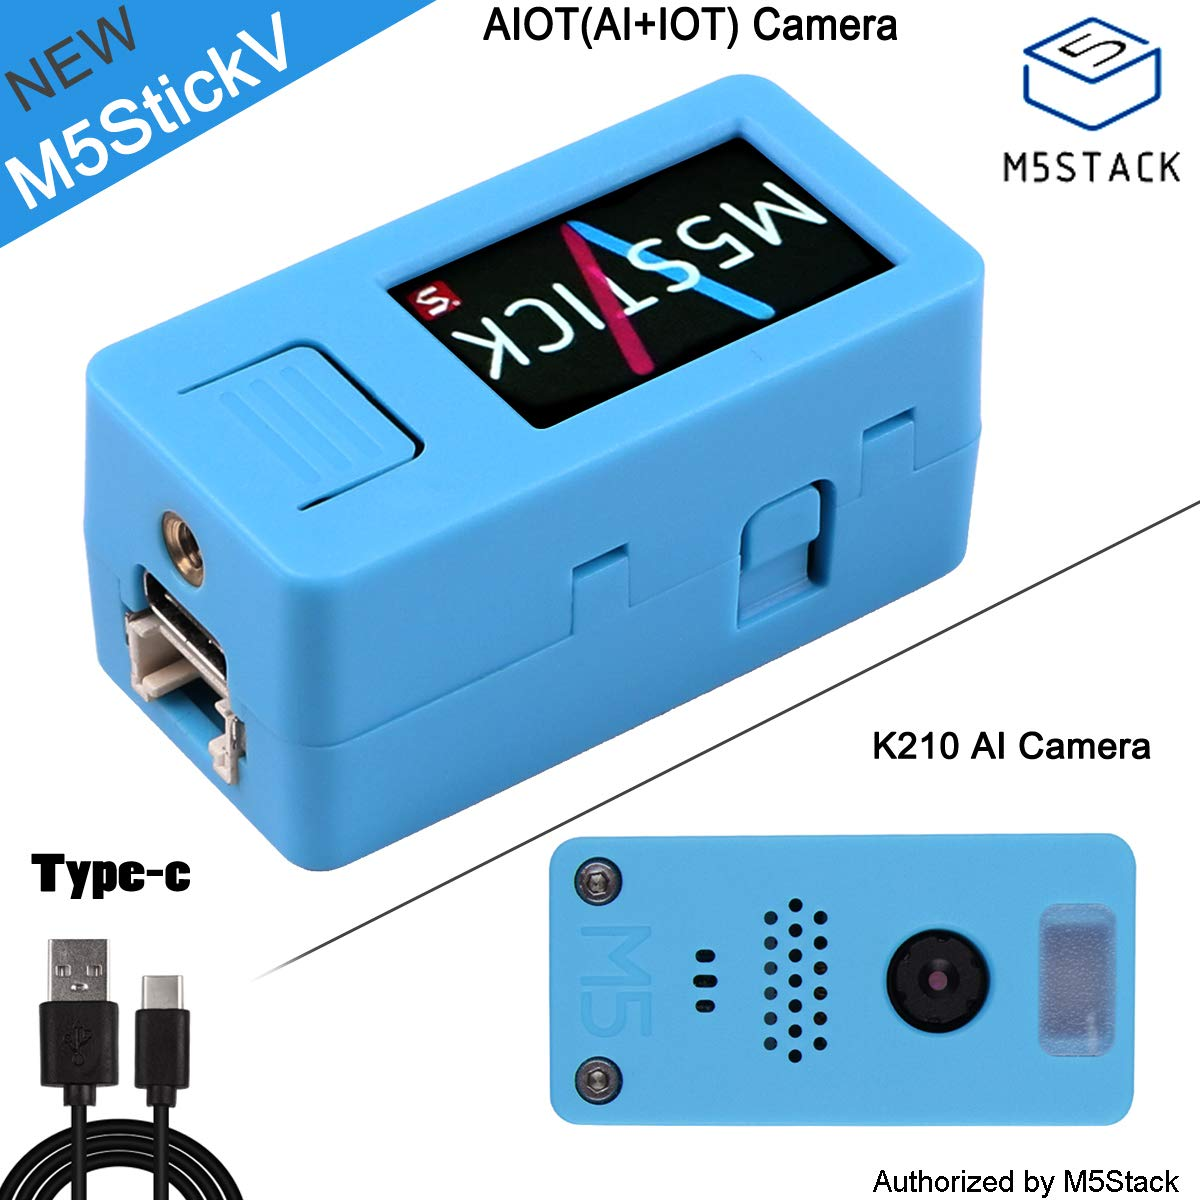 AI Camera AIOT(AI+IOT) Dual-core 64-bit RISC-V with OmniVision OV7740 Sensor with Speaker, Microphone, LCD Screen Display for Face Recognition and Logistics Sorting Robot M5Stack M5Stick-V